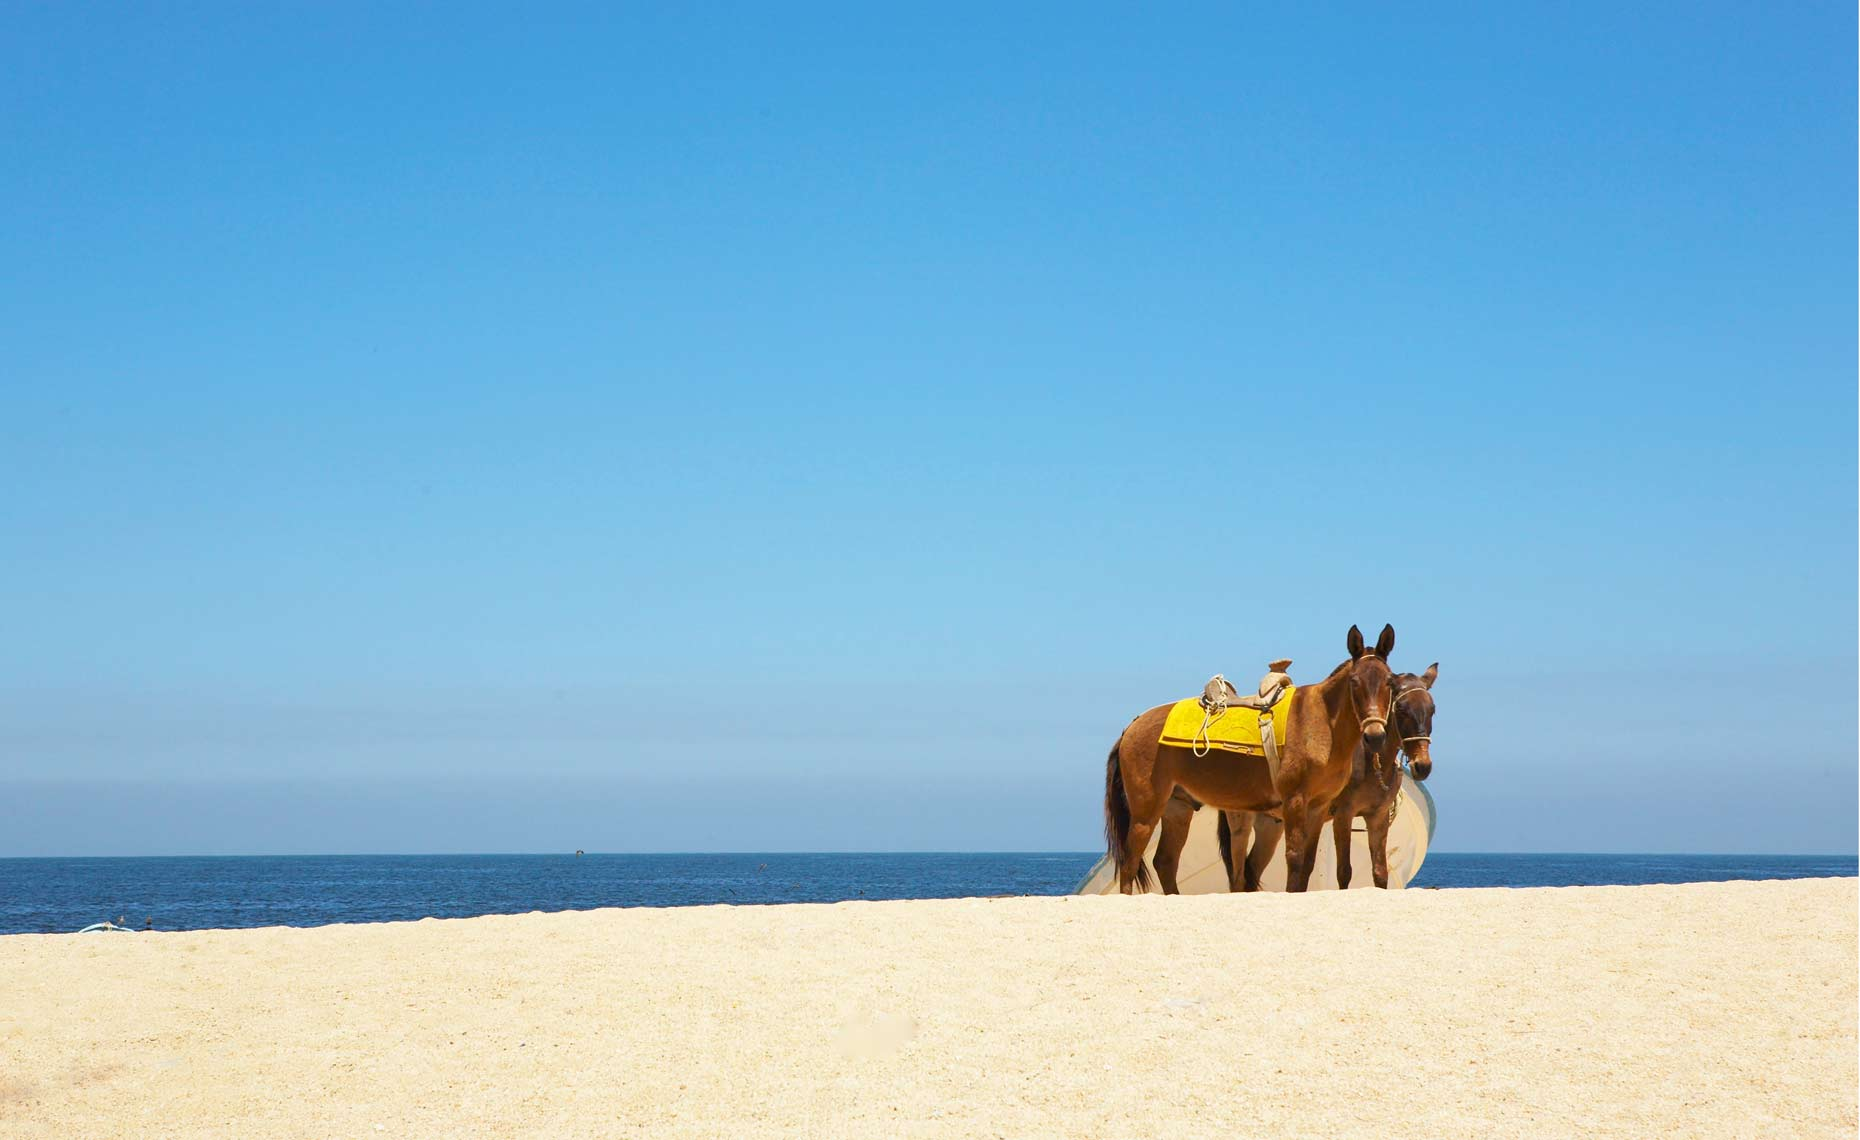 HorsesonBeach1.jpg